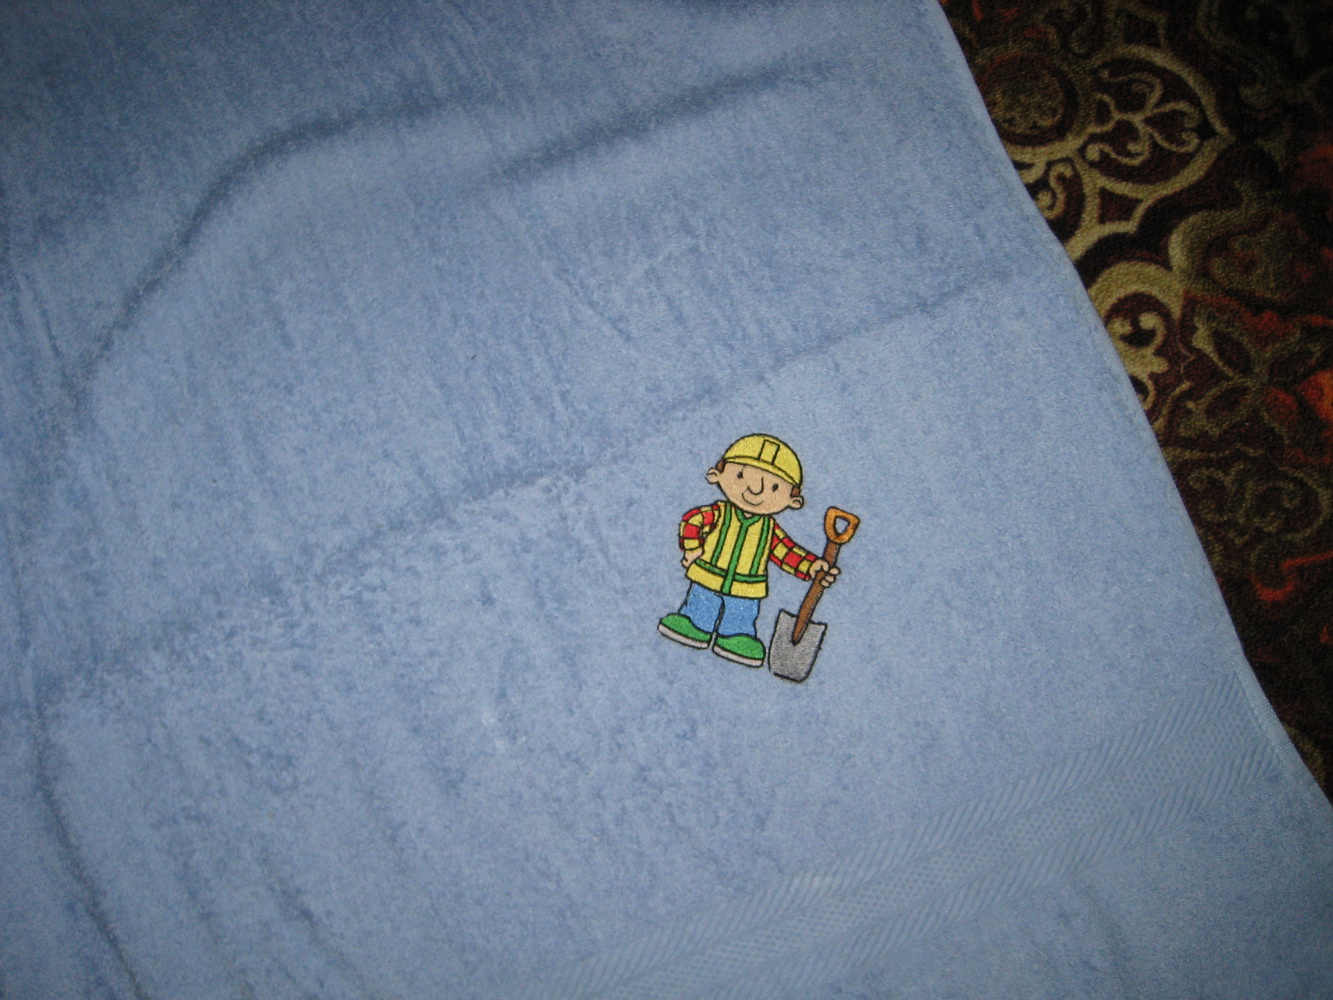 Bob the builder design on towel embroidered